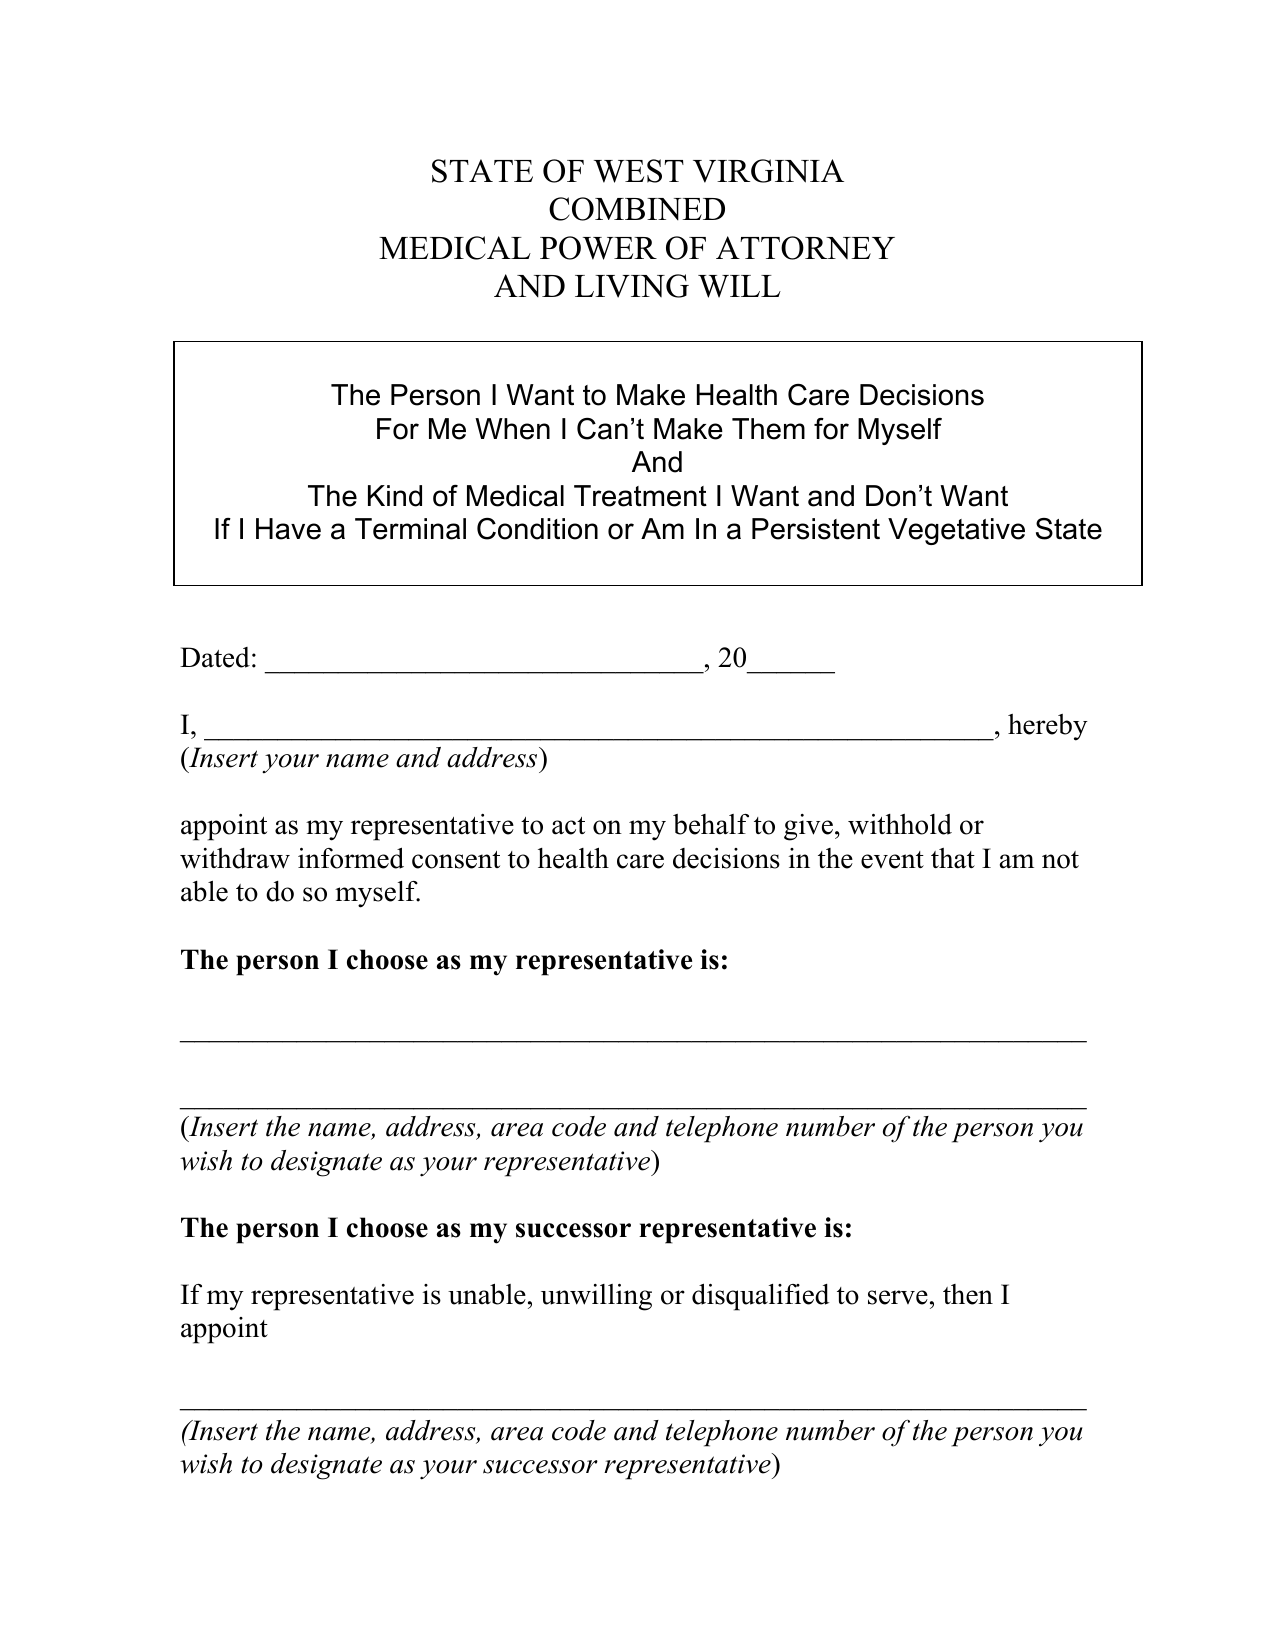 West Virginia Combined Living Will And Medical Power Of Attorney Form